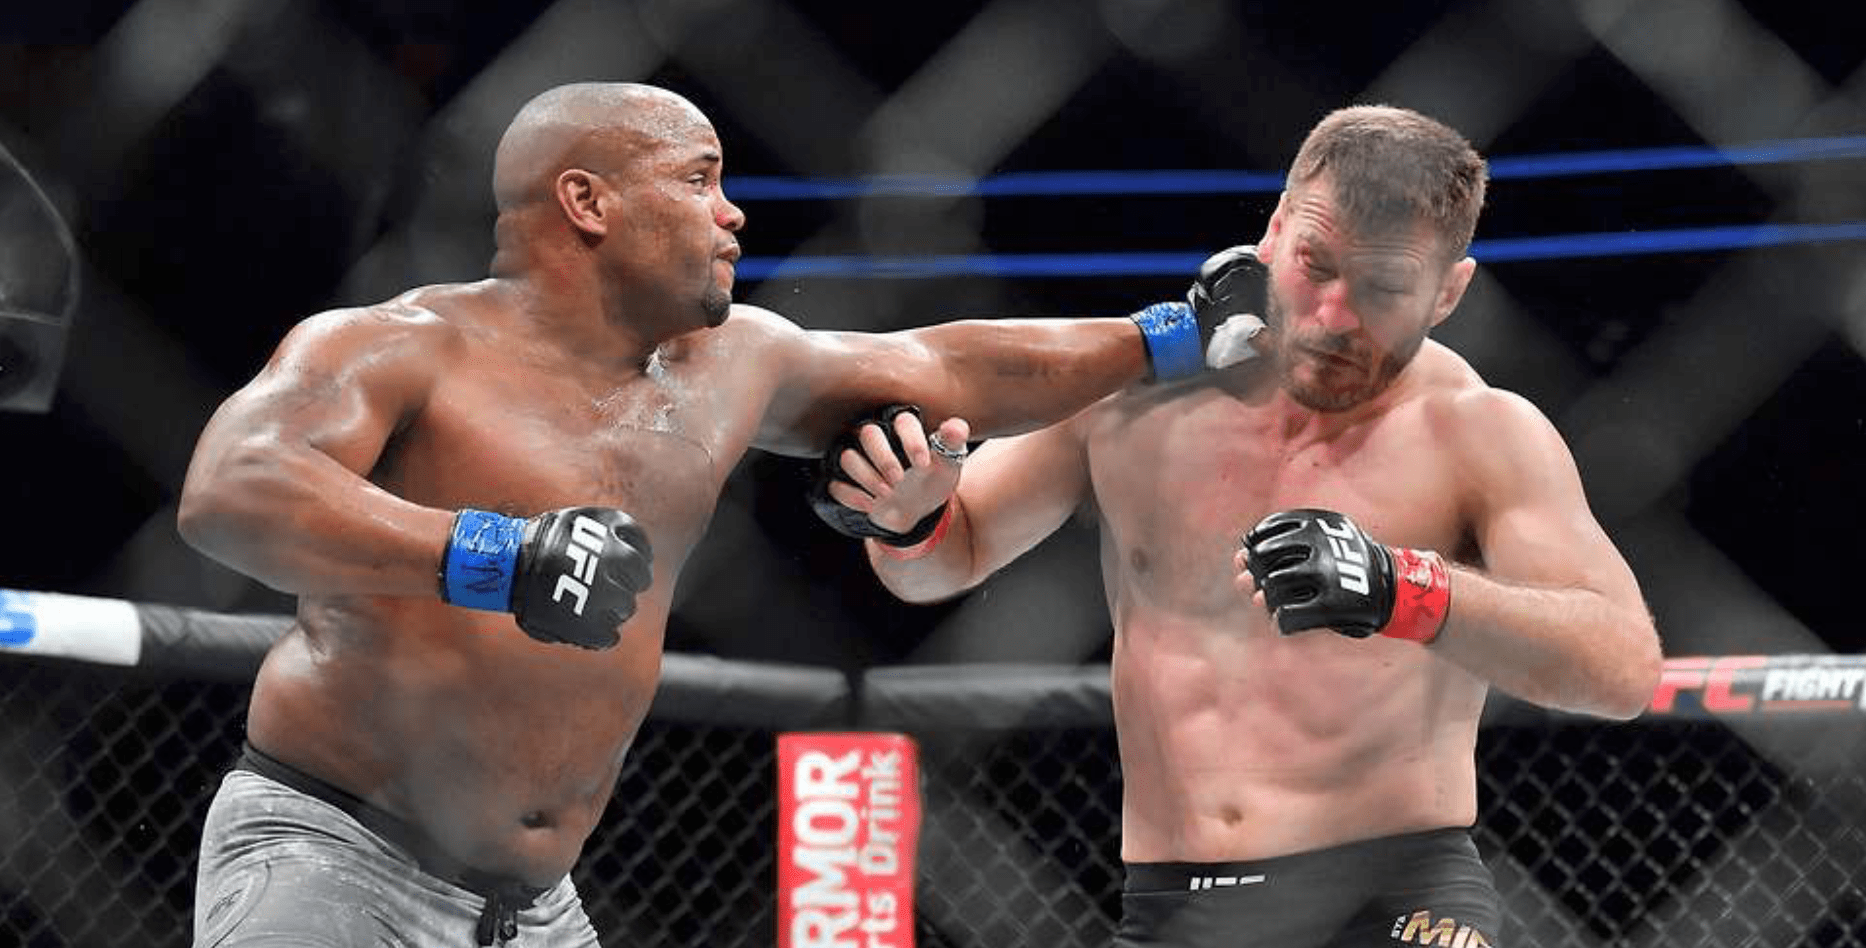 Daniel Cormier Hopes For 'Fairy Tale' Ending To UFC Career